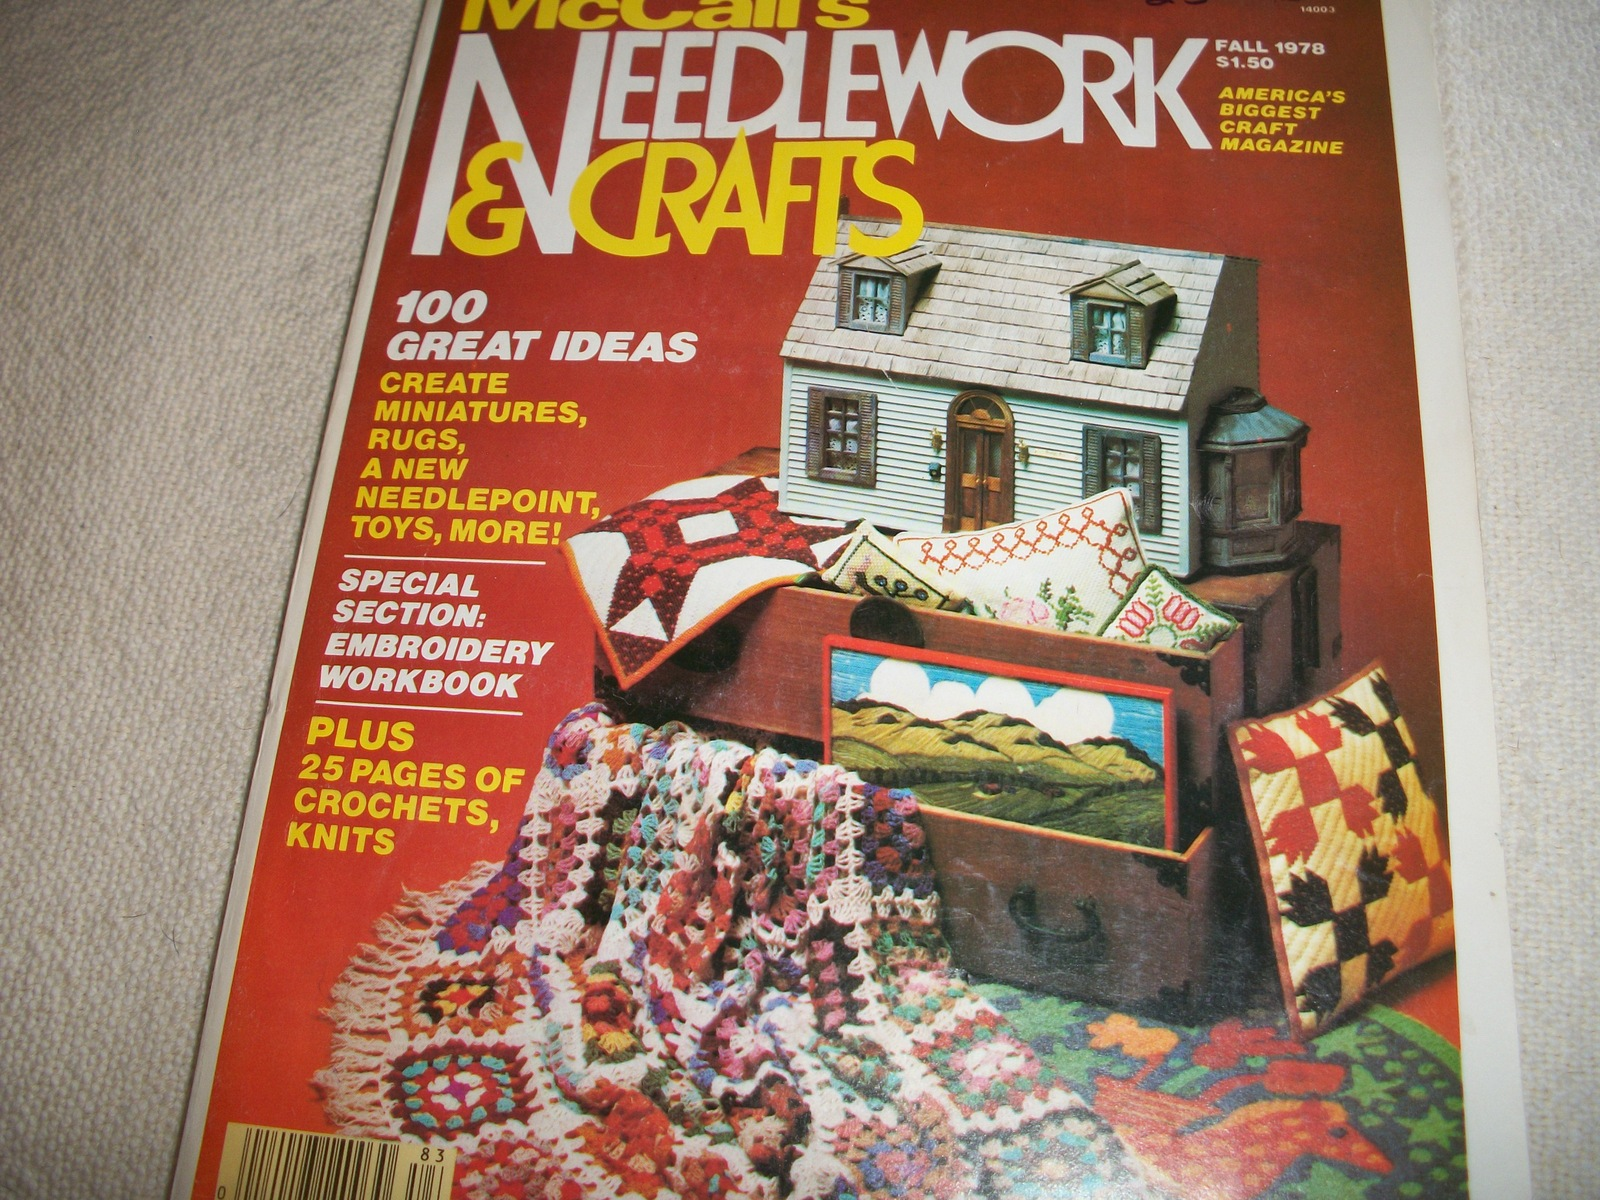 McCall's Needlework & Crafts Fall 1978